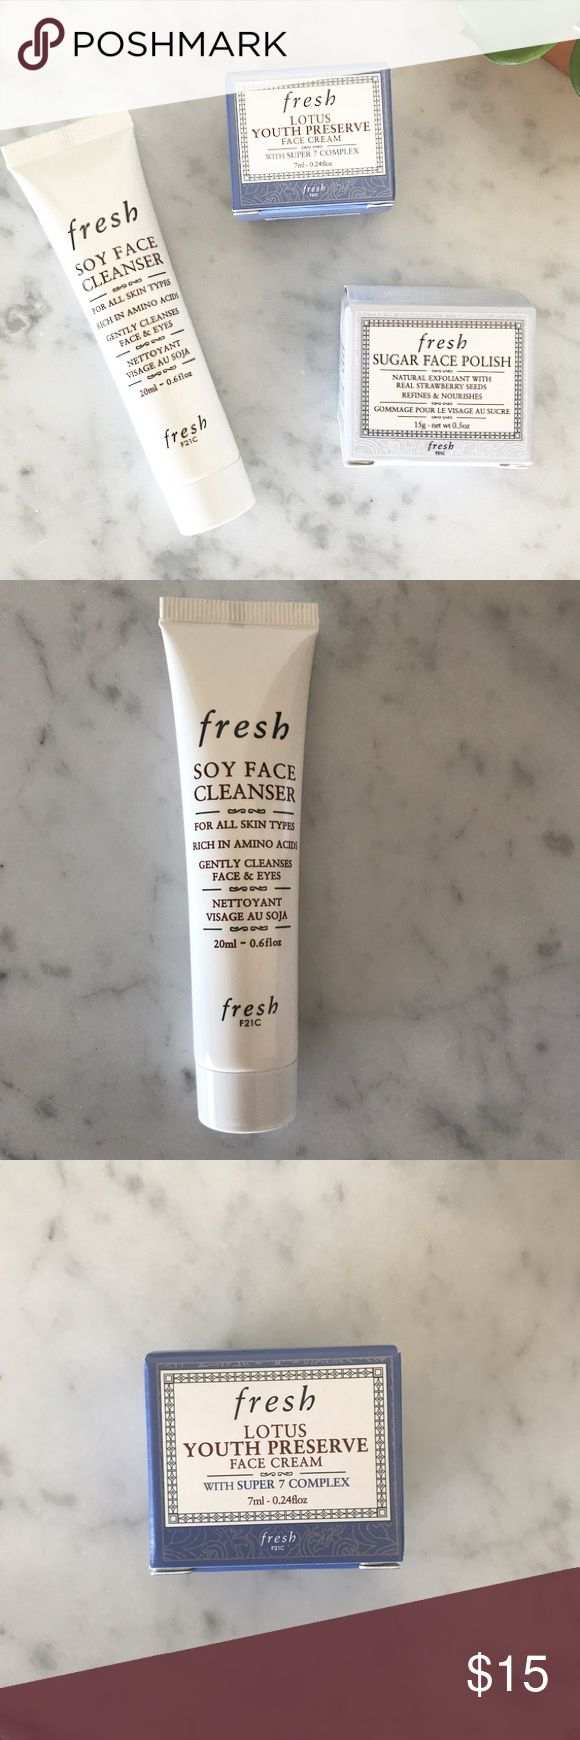 Sephora fresh travel essentials New travel sized deluxe minis by fresh. Soy face cleanser, lotus youth preserve face cream, and sugar face polish. The face cream is one of my personal favorites! Skin care samples included with purchase. No trades. Sephora Makeup